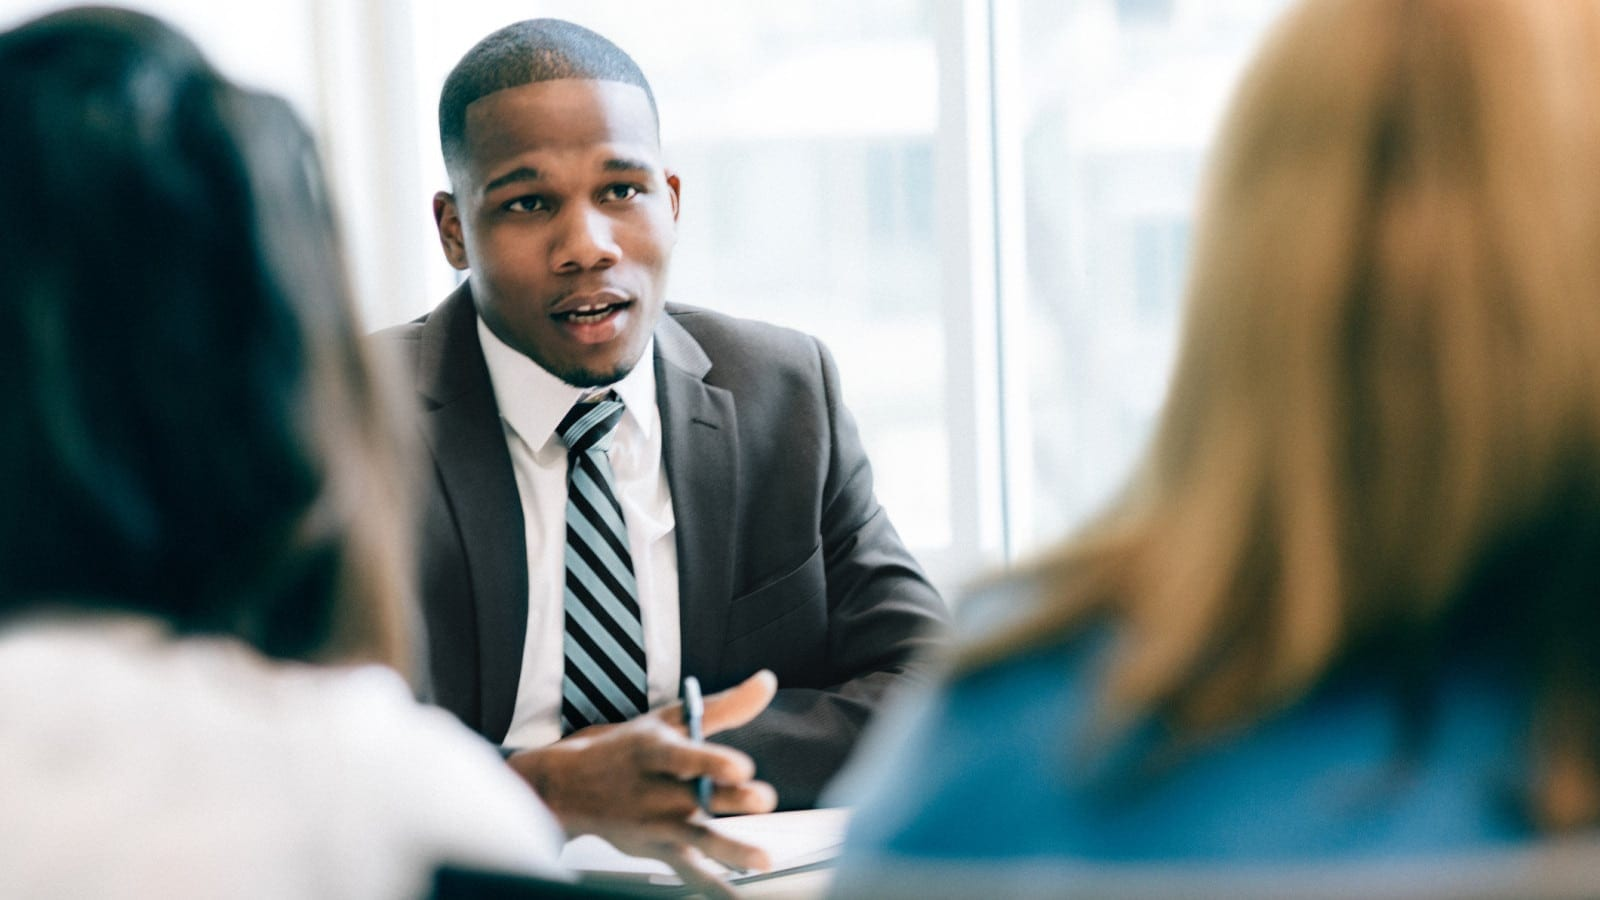 Attorney Consulting Two Clients During A Private Meeting Stock Photo